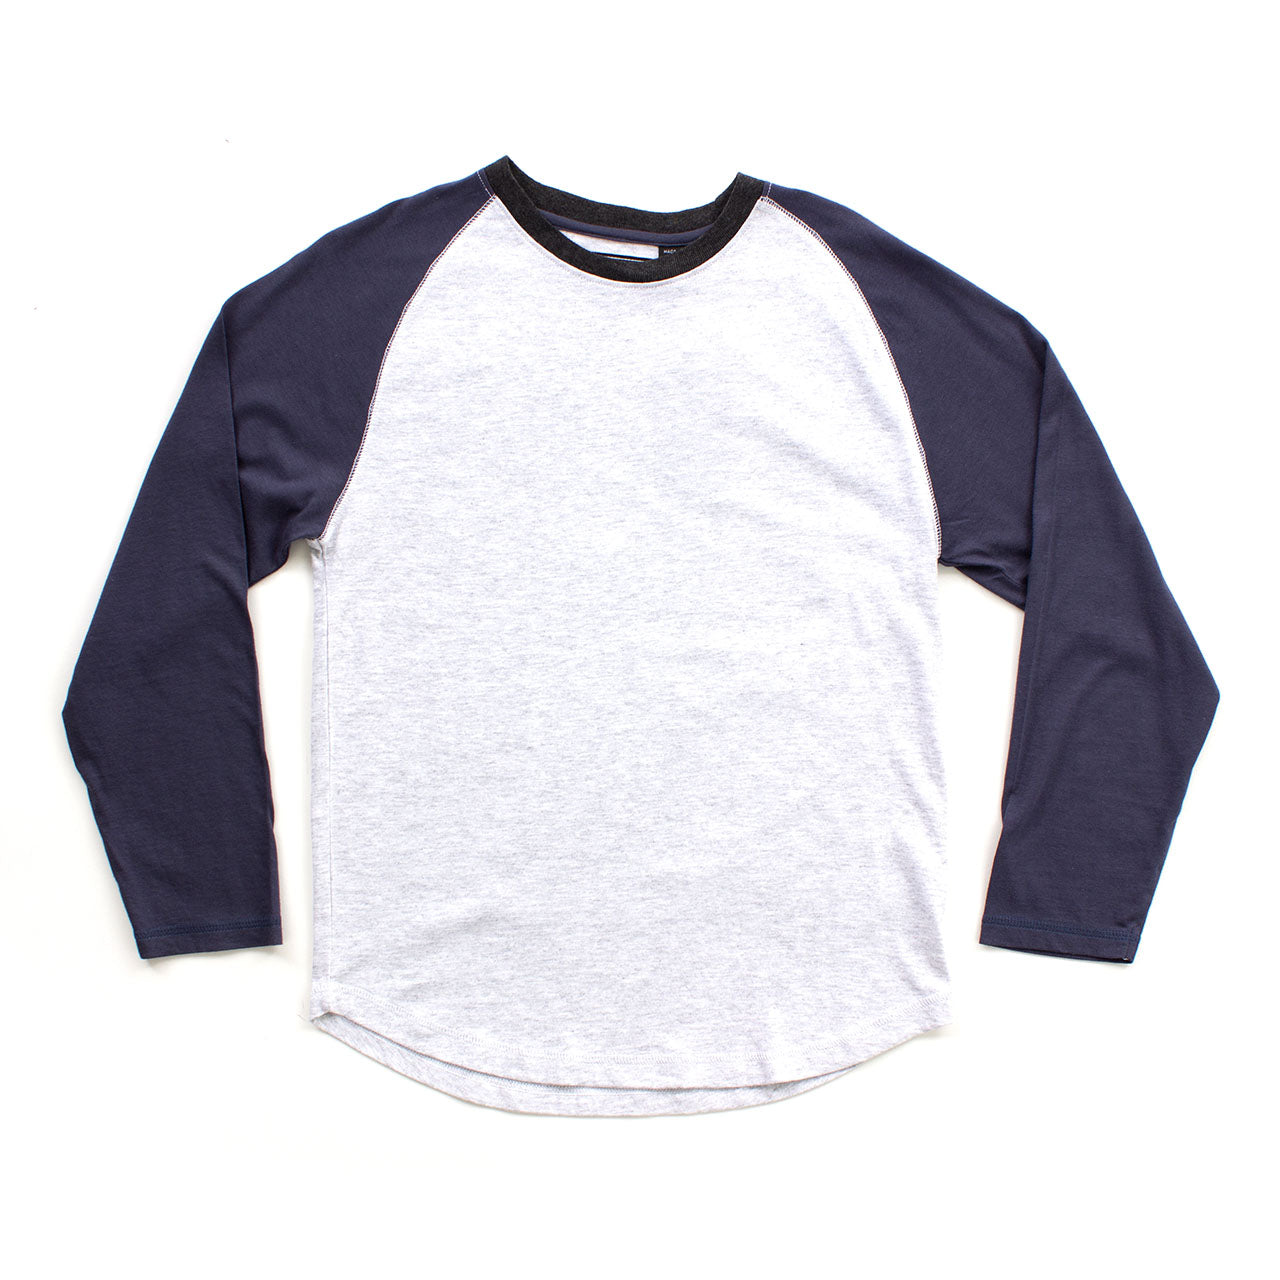 Jaylen Raglan Long Sleeve Tee Small Boys